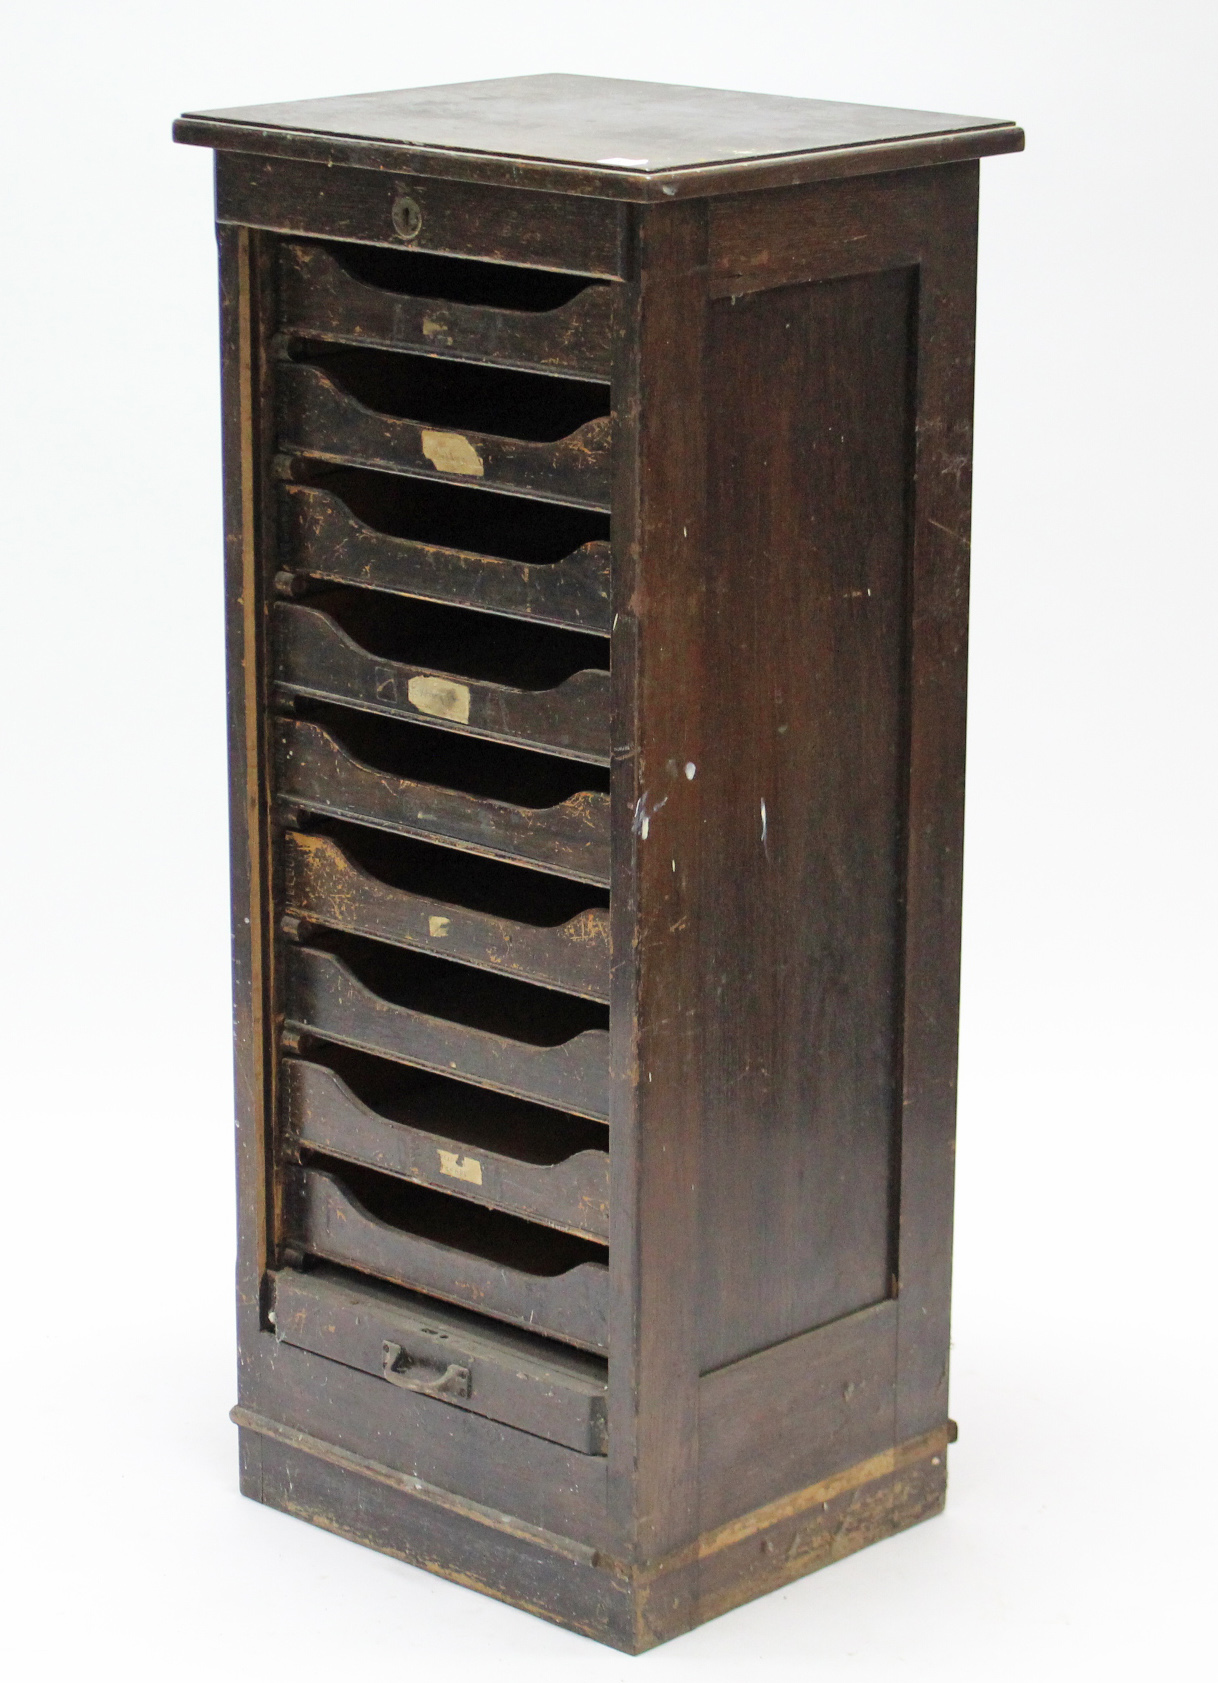 Lot 51 - An Edwardian oak small upright office cabinet, fitted nine sliding trays enclosed by tambour